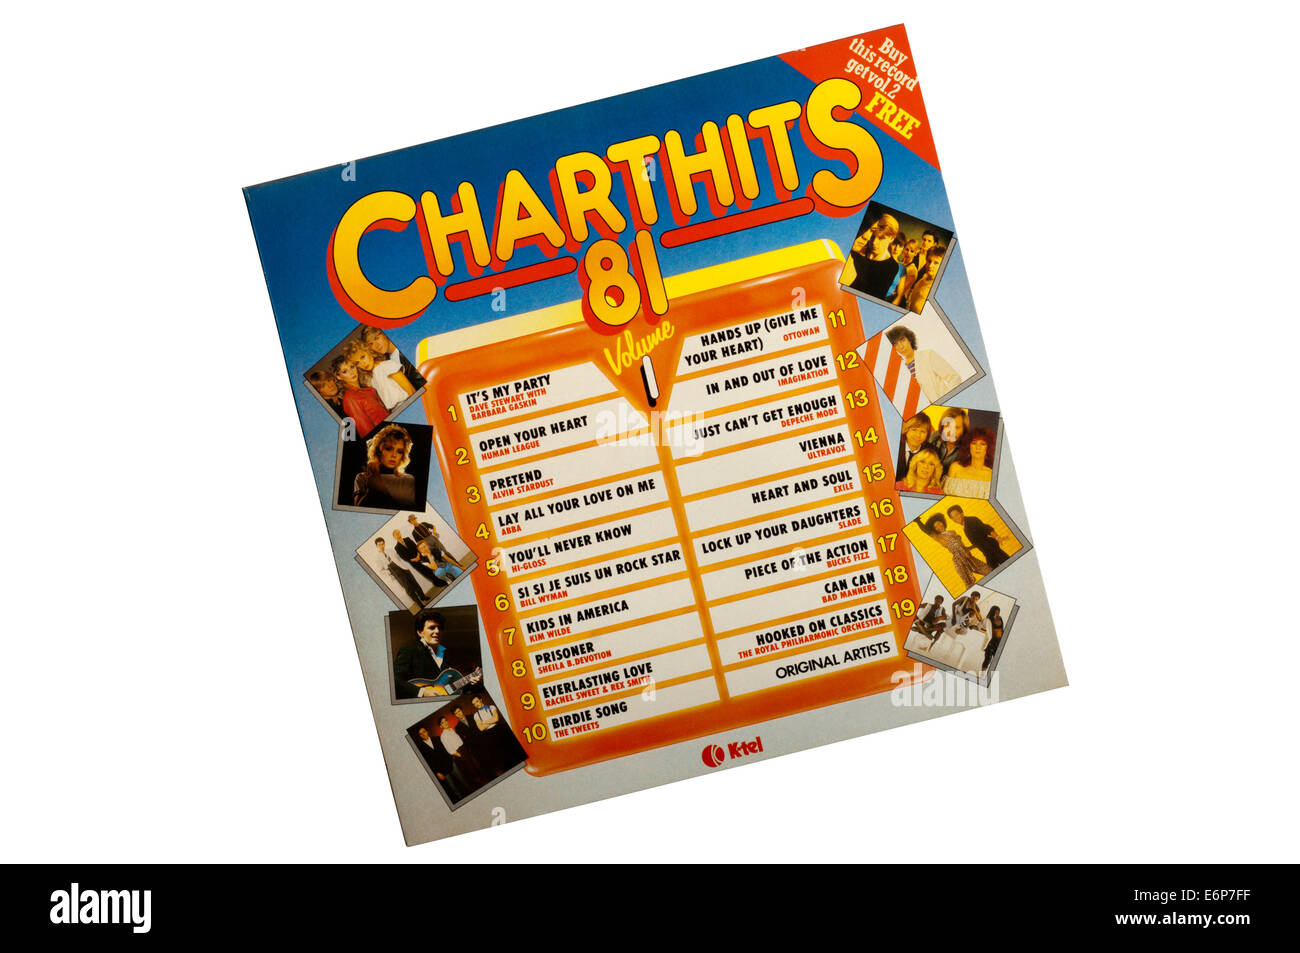 Chart Hits 81 Volume 1 was a compilation album released by K-Tel in 1981. - Stock Image